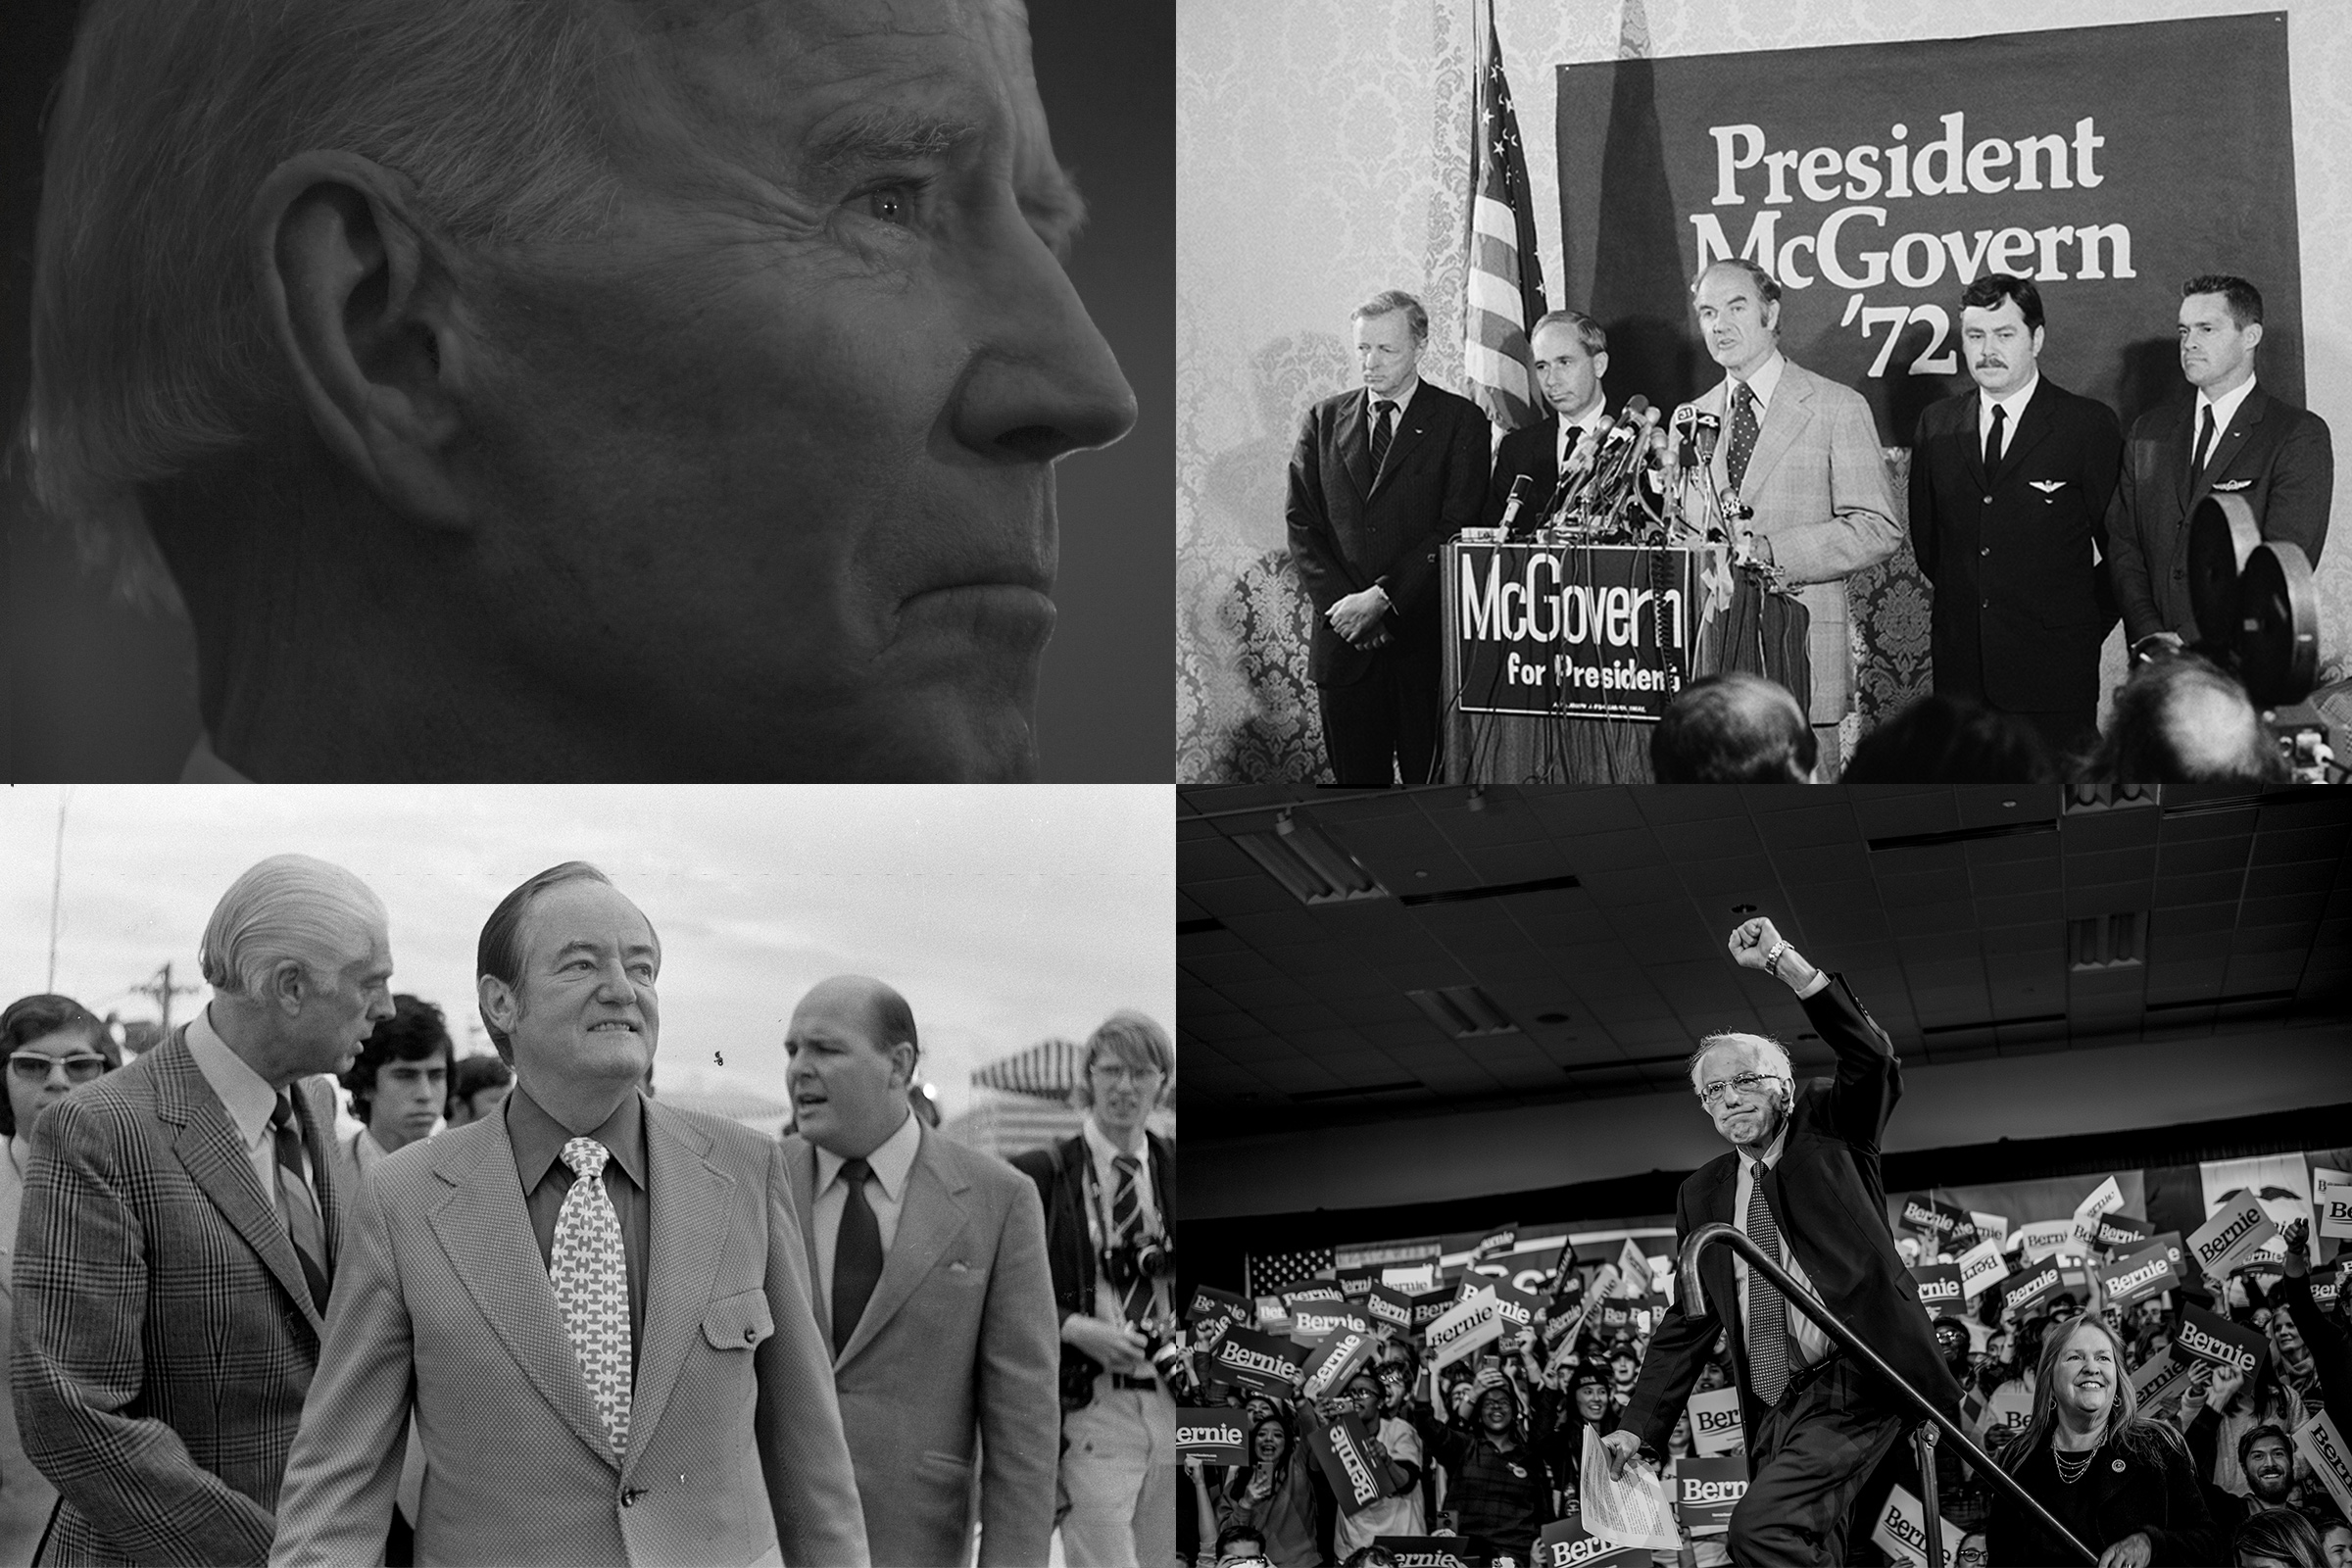 From top left, clockwise: Joe Biden during a community event in Fort Dodge, Iowa, on Jan. 21; George McGovern urges U.N. Security Council to take action to prevent air hijackings in New York June 19, 1972; Bernie Sanders during a rally at the Holiday Inn in Des Moines, Iowa, on Feb. 3; Hubert Humphrey visits the Miami airport during the Democratic National Convention in Florida on July 10, 1972.